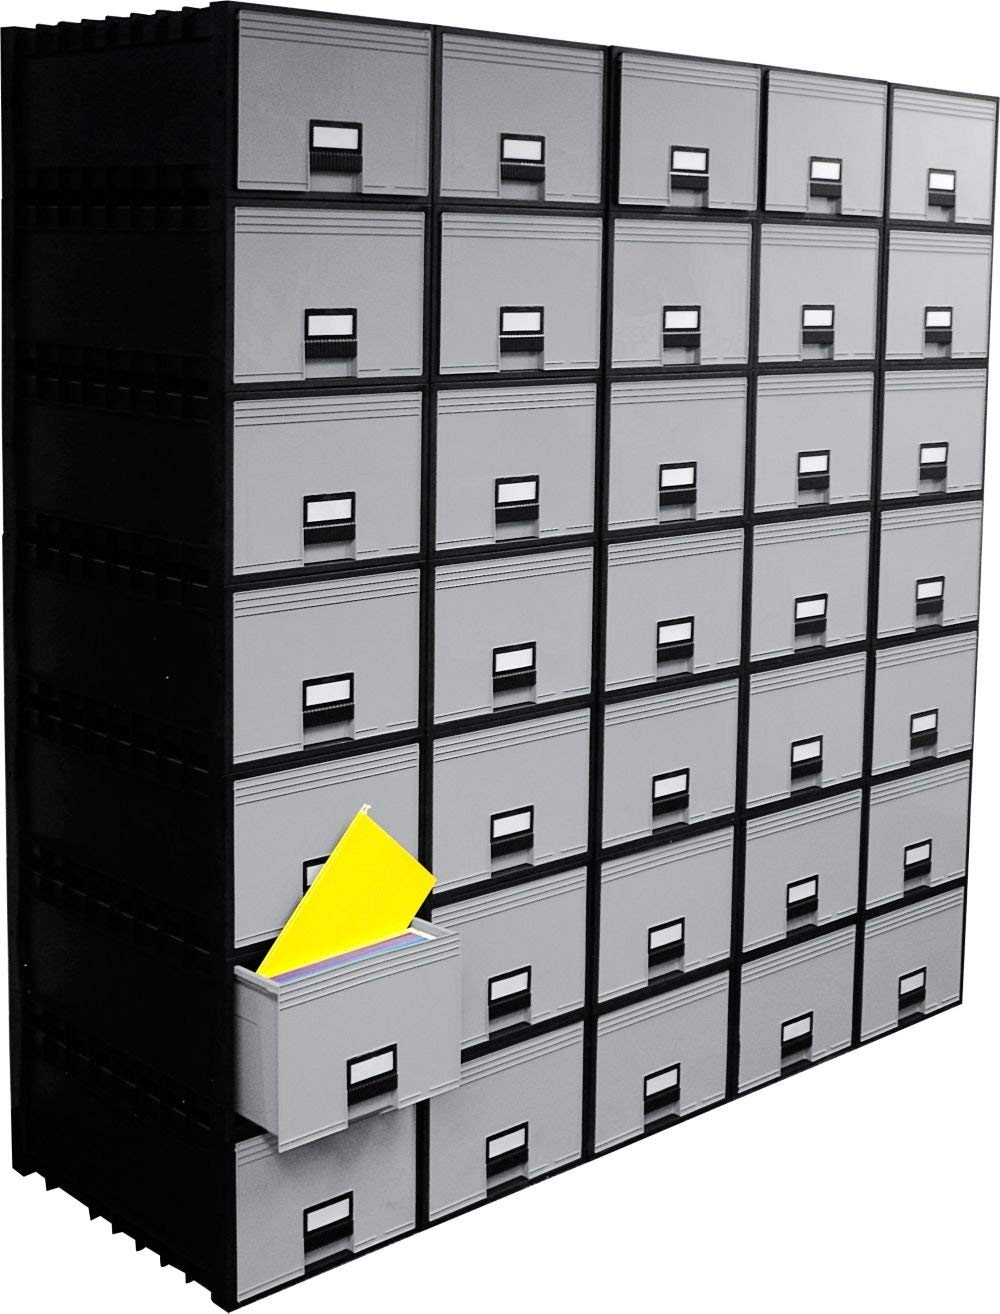 """Set of 1, Archive Storage Box - Dimensions: 15.2""""W x 24.3""""D x 11.4""""H Weight: 10 Lbs Stackable & Water-Resistant, Construction: Molded Plastic. Drawer: One - Black/Gray"""